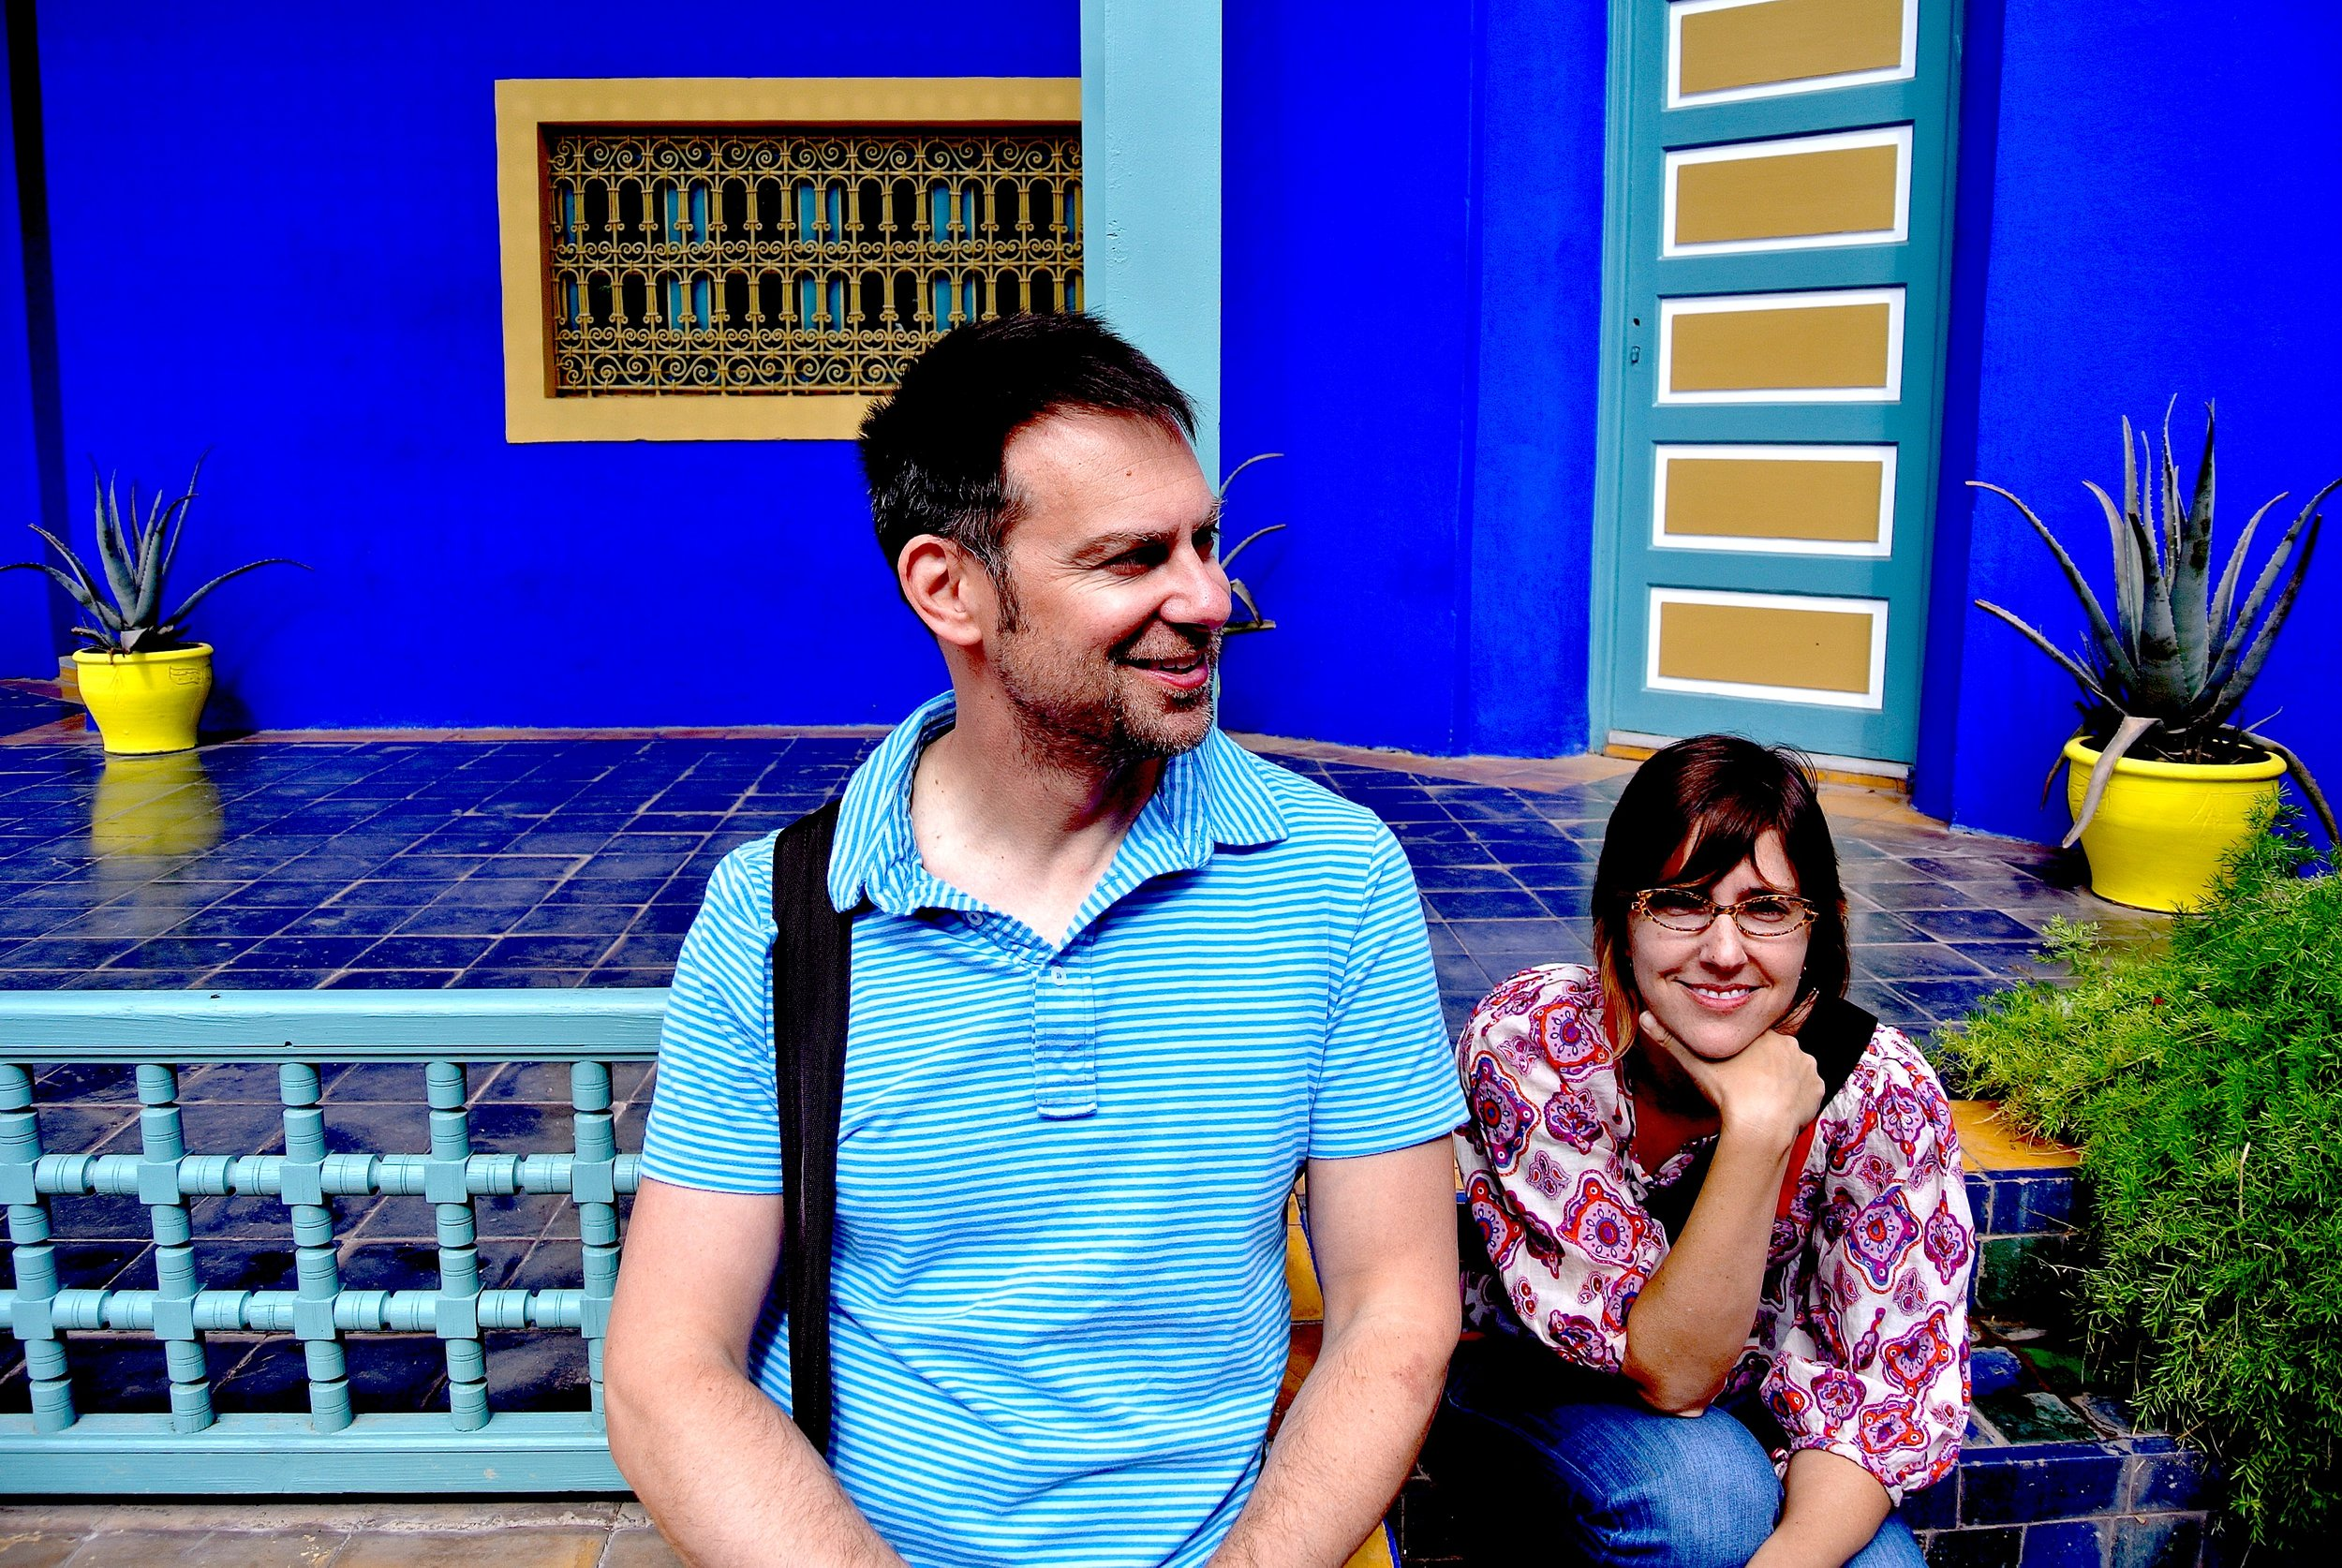 Duke and Vanessa in the Majorelle Gardens